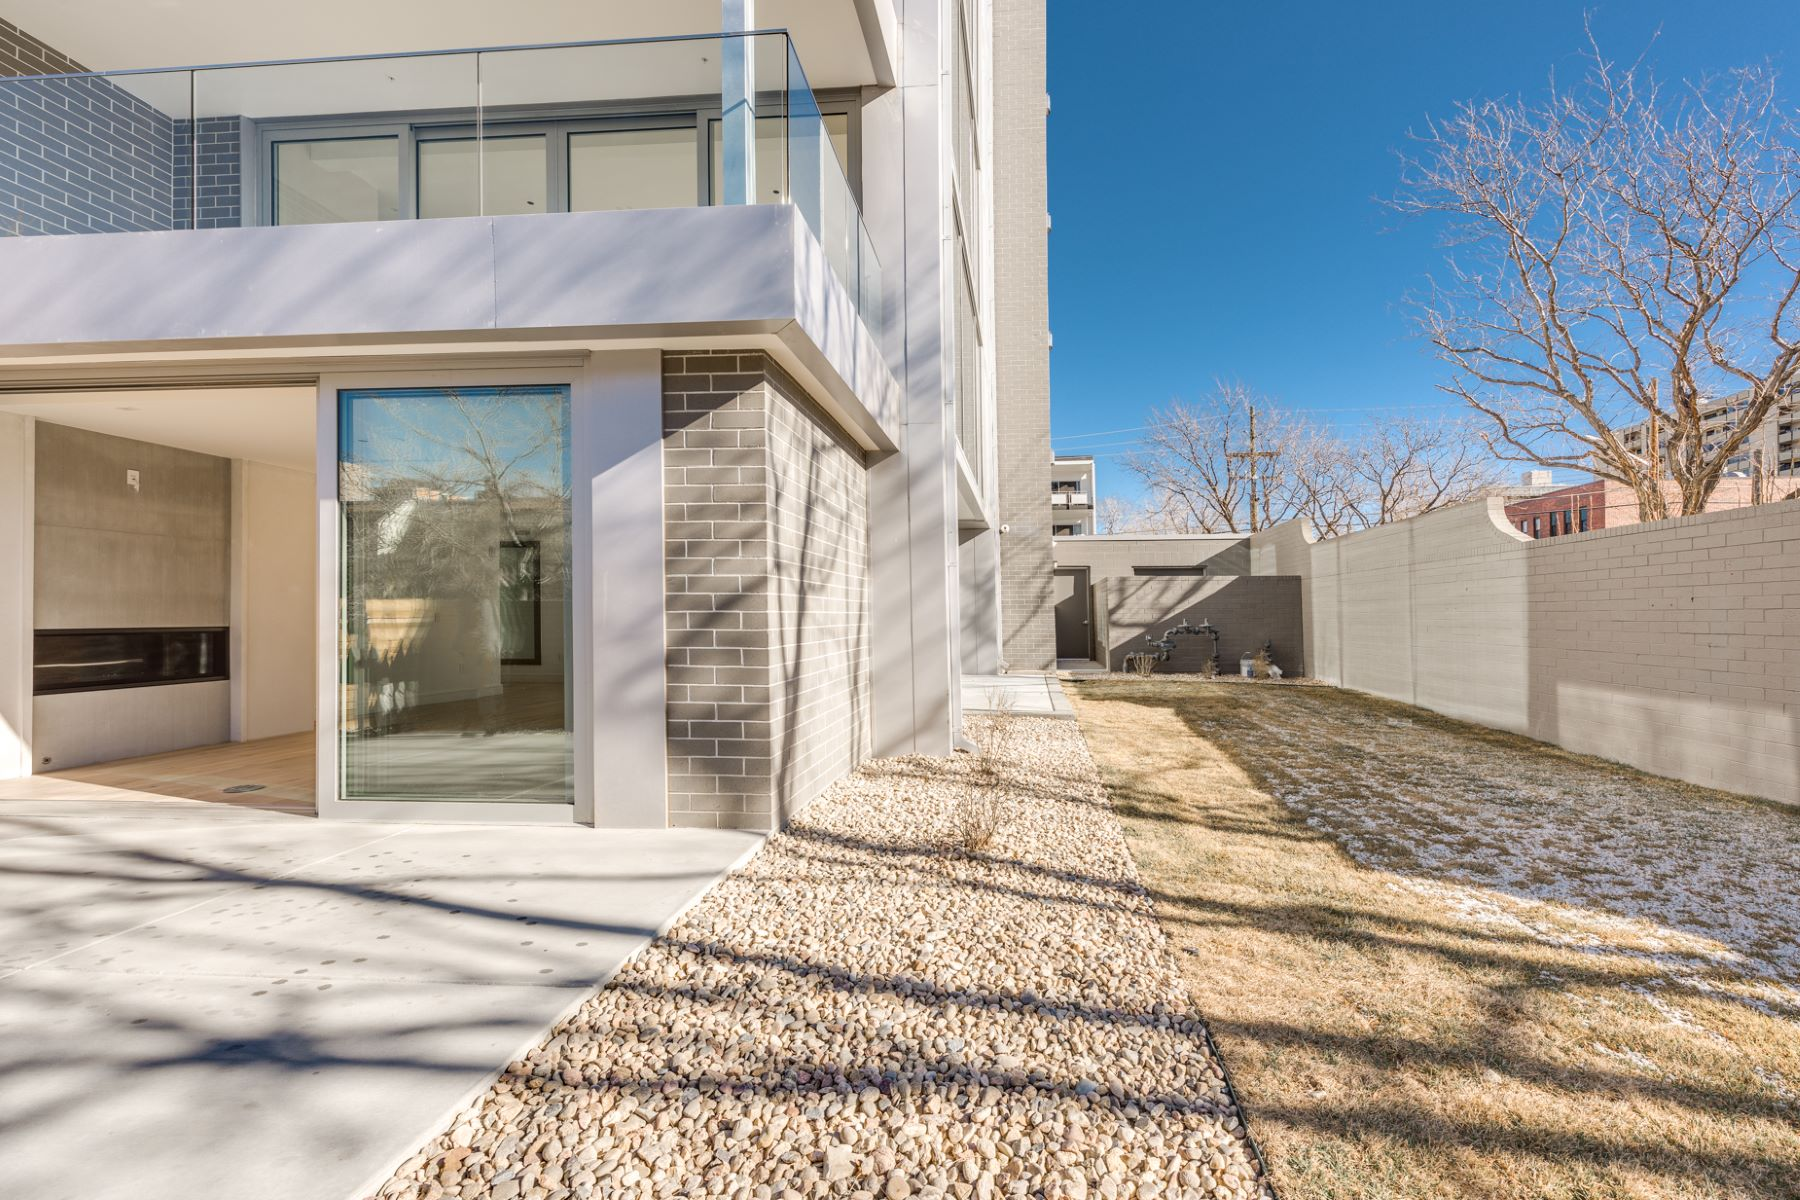 Additional photo for property listing at 900 Pennsylvania Street #100 900 Pennsylvania Street #100 Denver, Colorado 80203 Estados Unidos